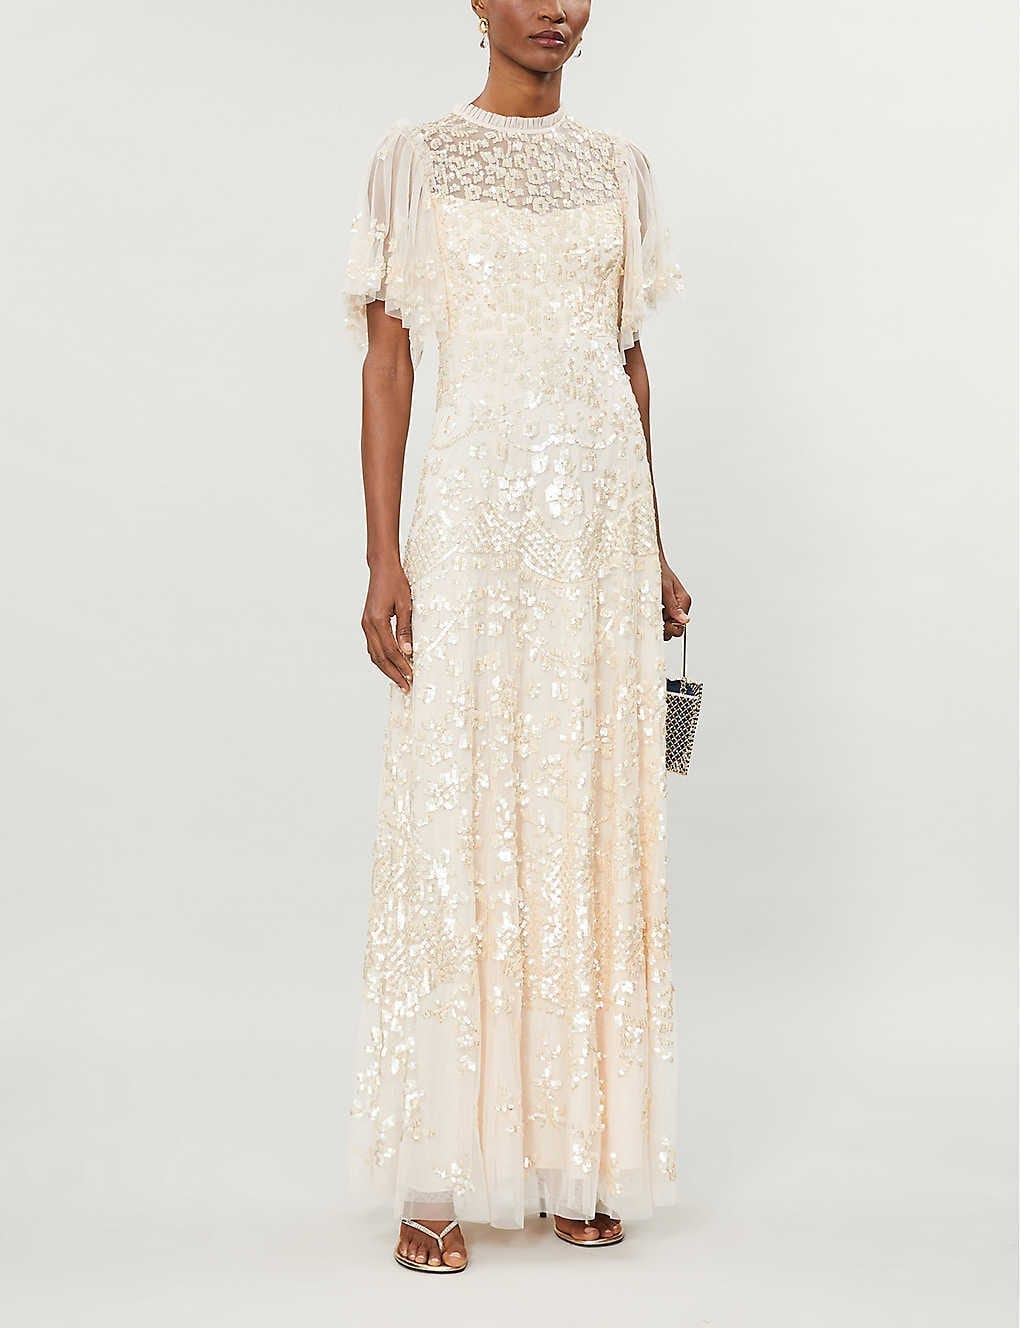 NEEDLE AND THREAD Honesty Embellished Mesh Gown